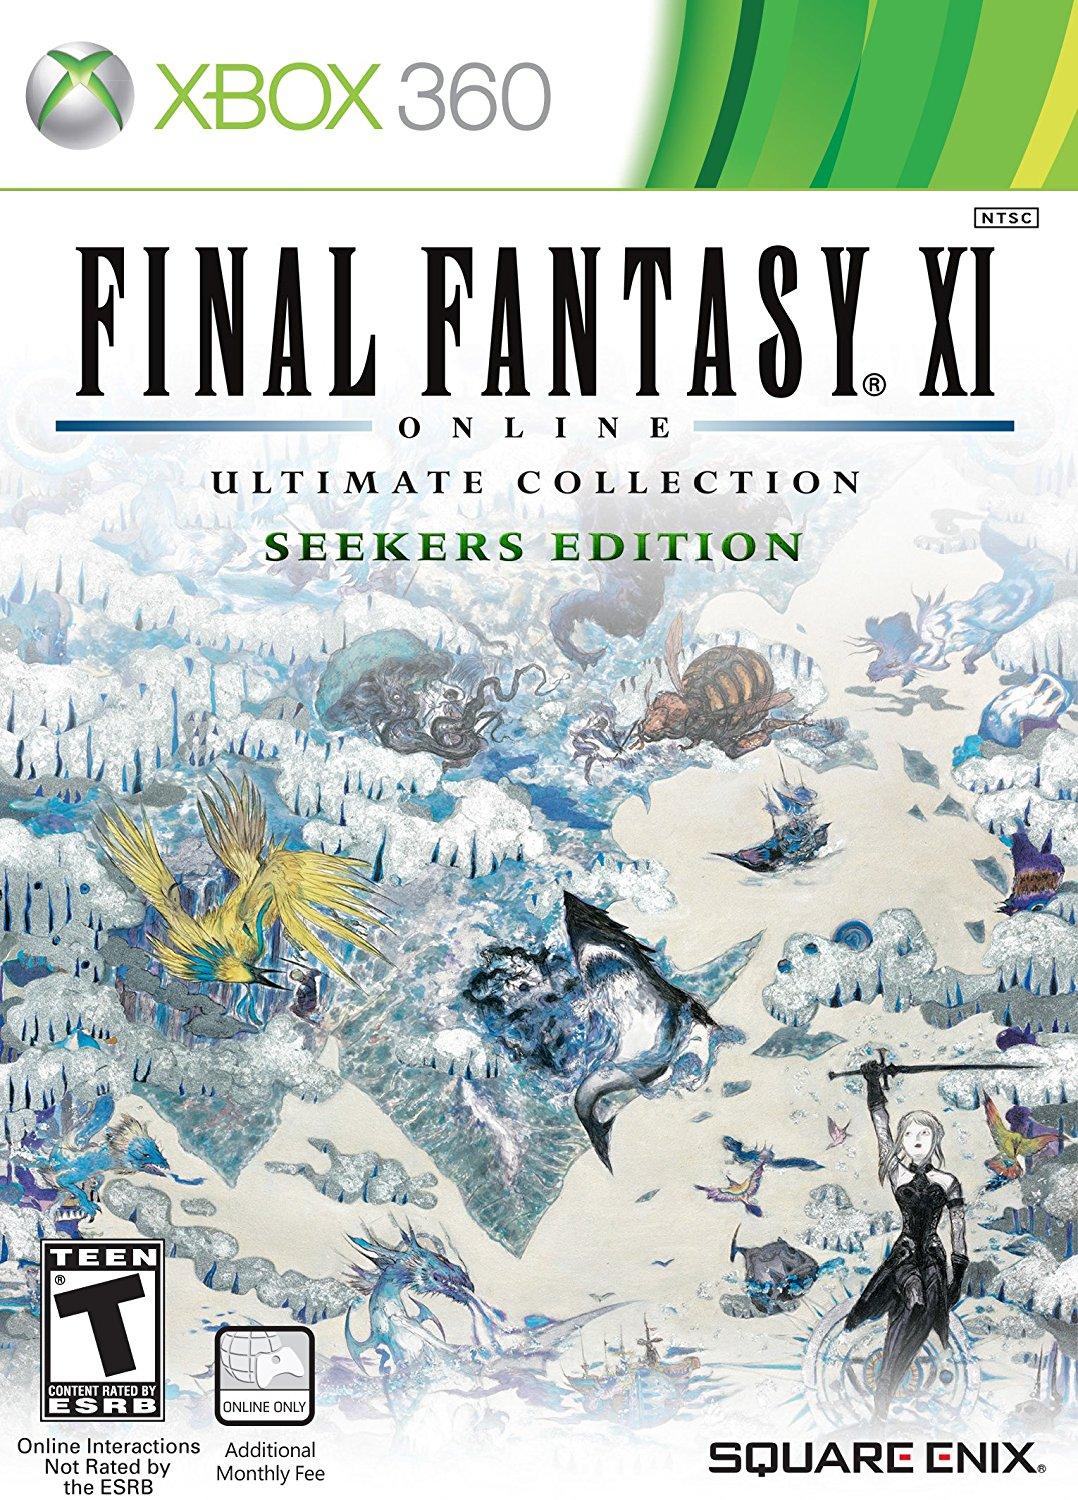 Final Fantasy Xi Ultimate Collection Seekers Edition Xbox 360 Ebony Gamer Girl